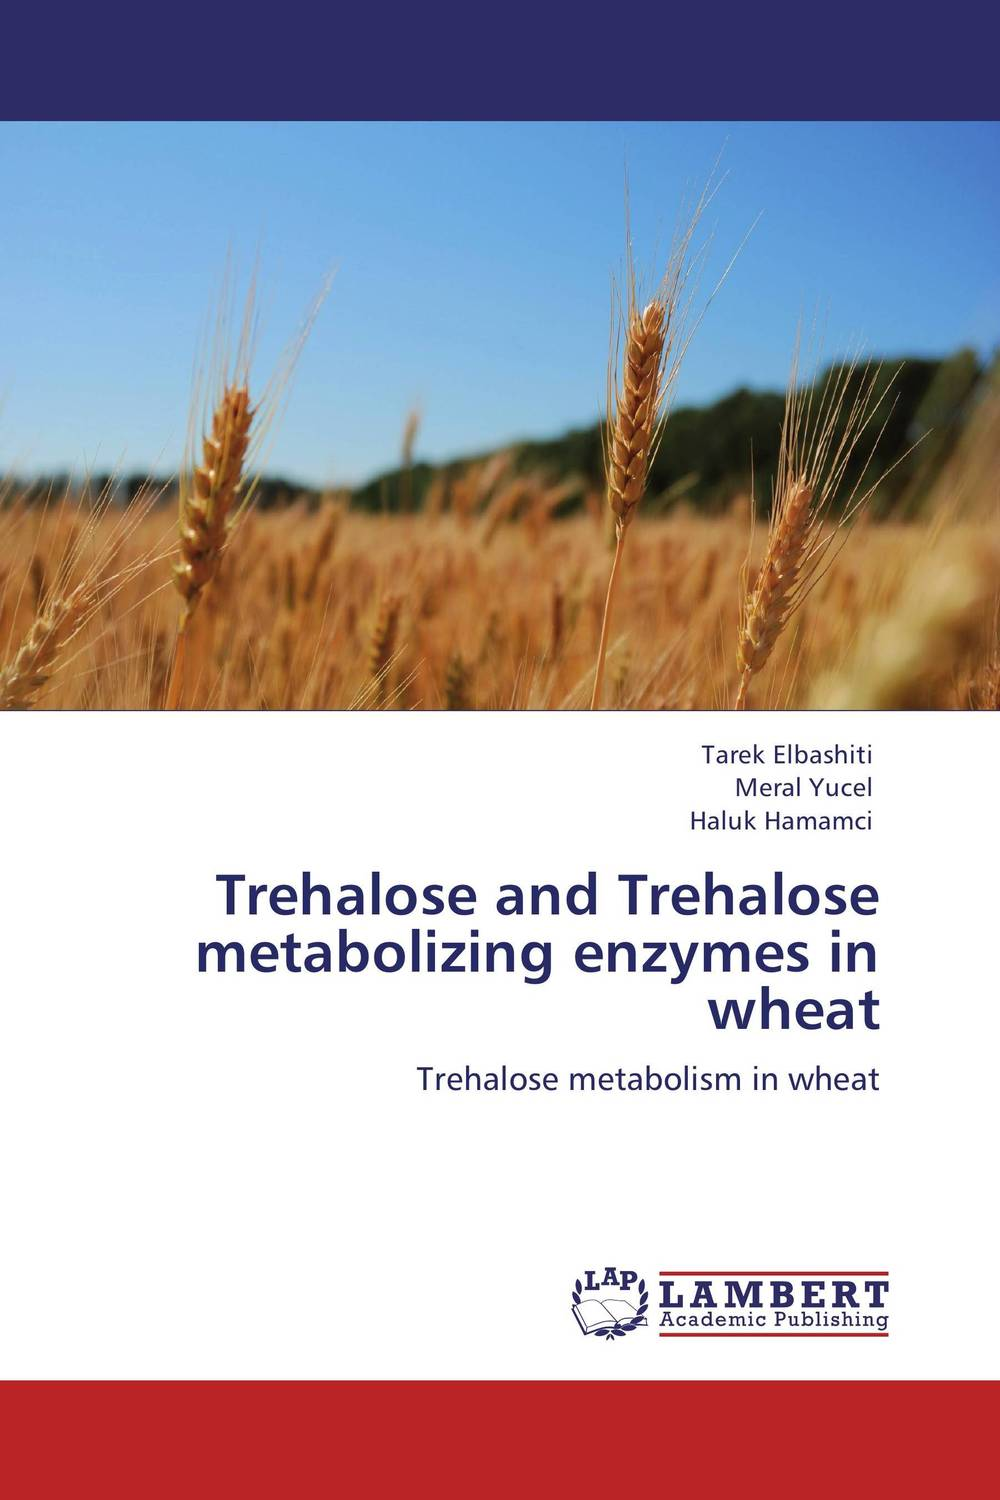 Trehalose and Trehalose metabolizing enzymes in wheat